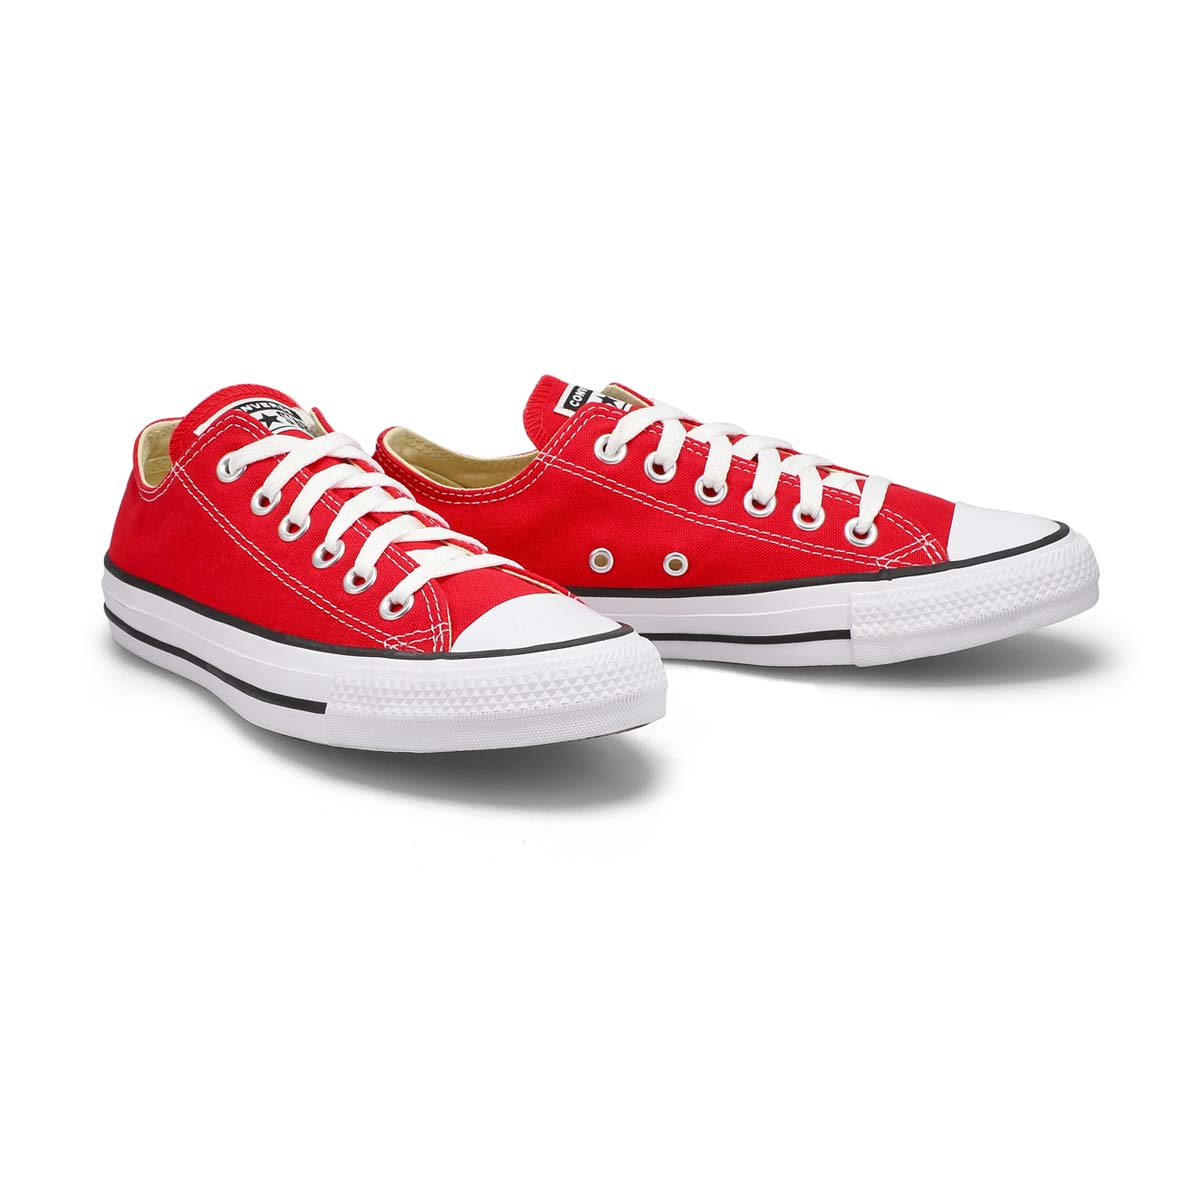 Lds CT All Star Core Ox red sneaker